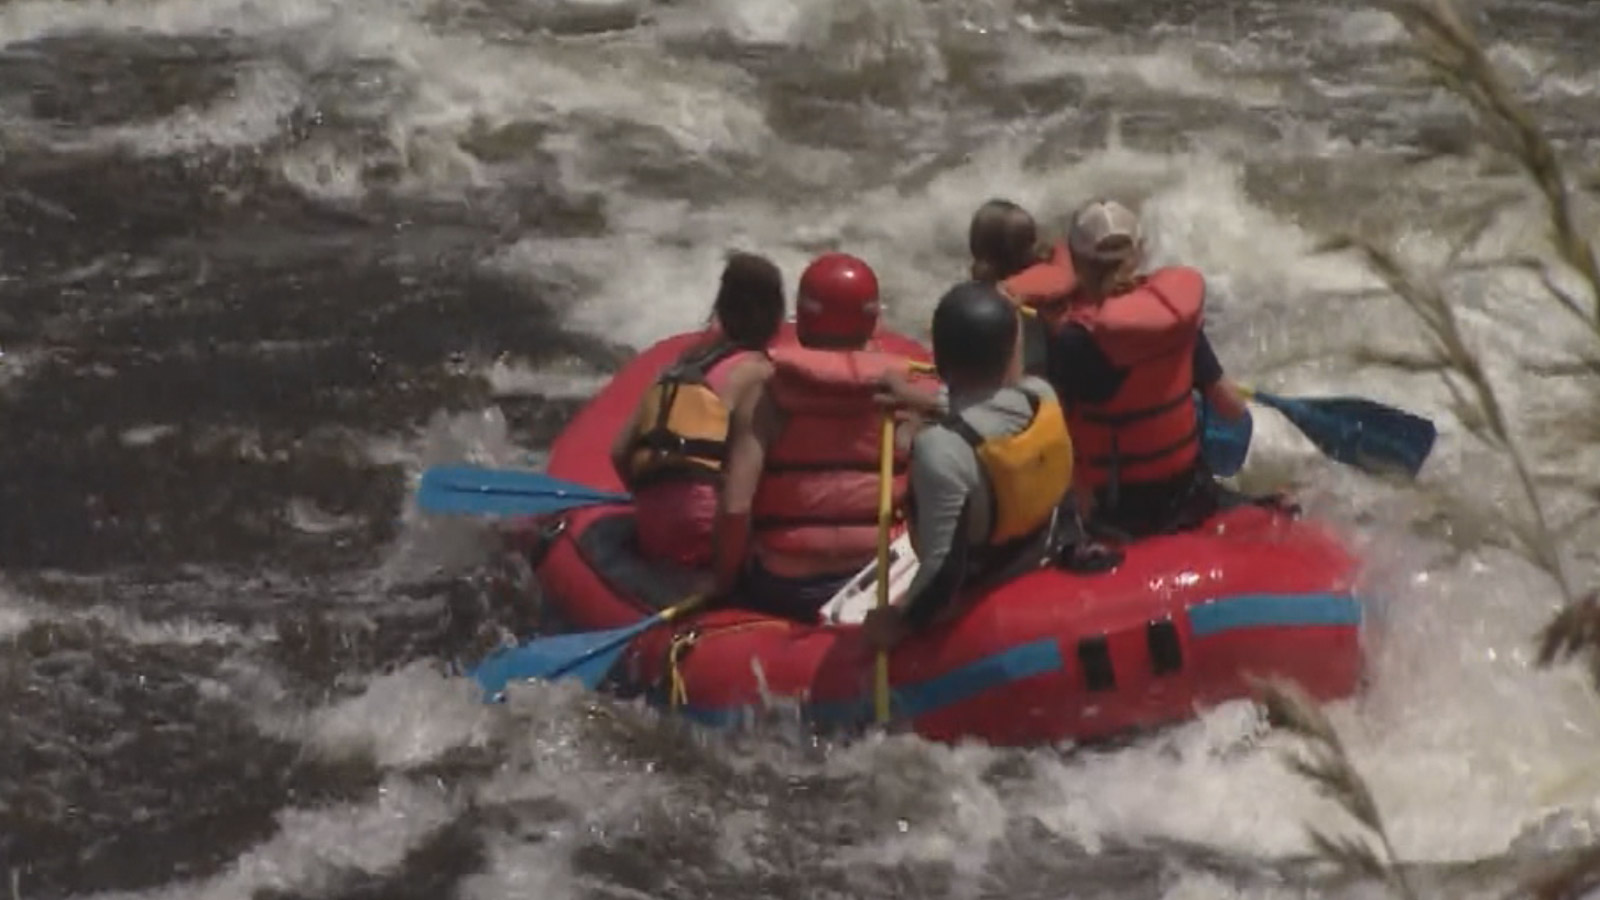 Rafting on the Poudre River (credit: CBS)